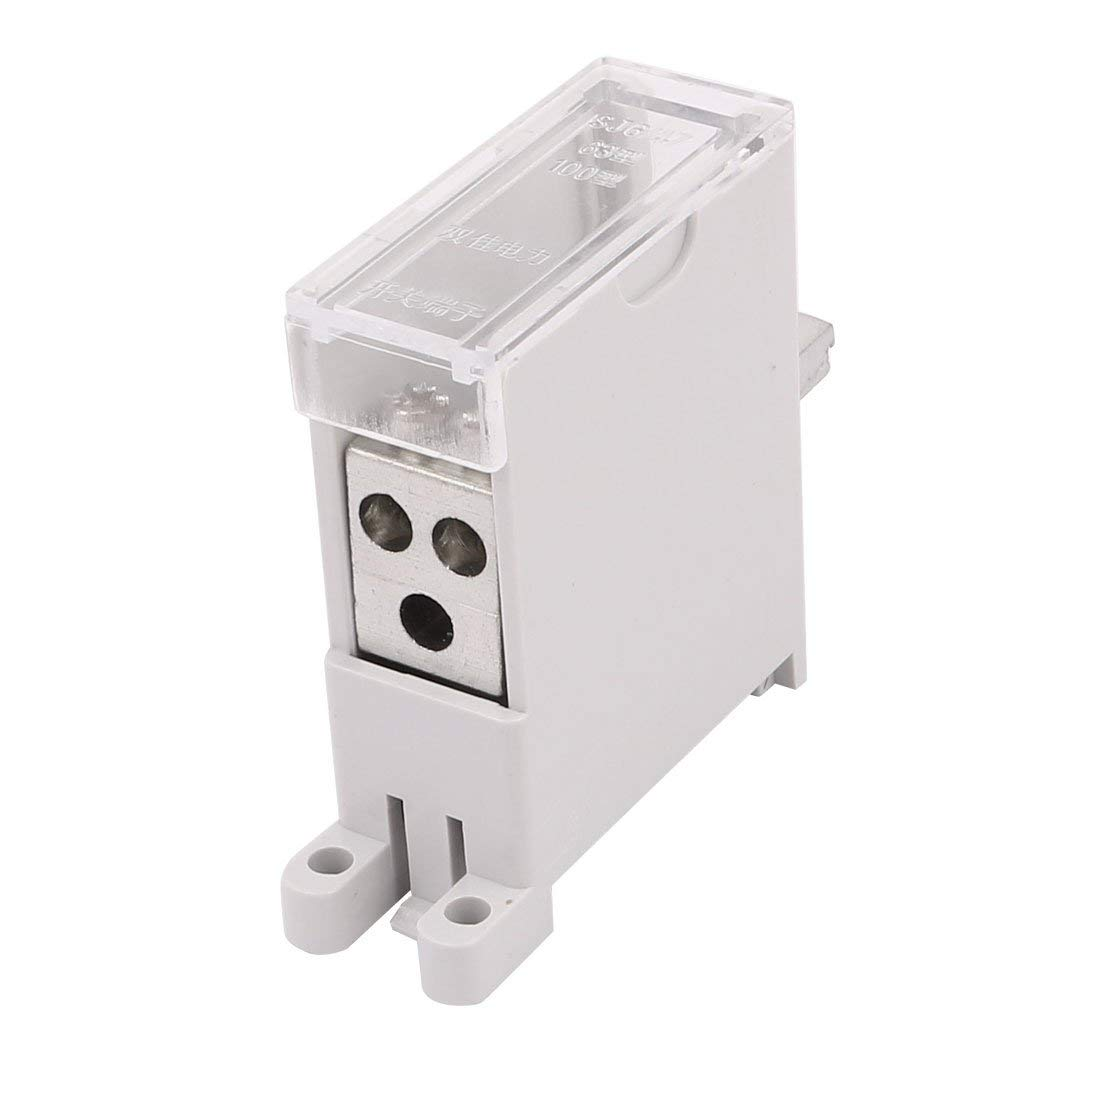 uxcell DZ47 Switch Terminal Wire Barrier Block 1 Inlet 3 Outlet for Miniature Circuit Breakers